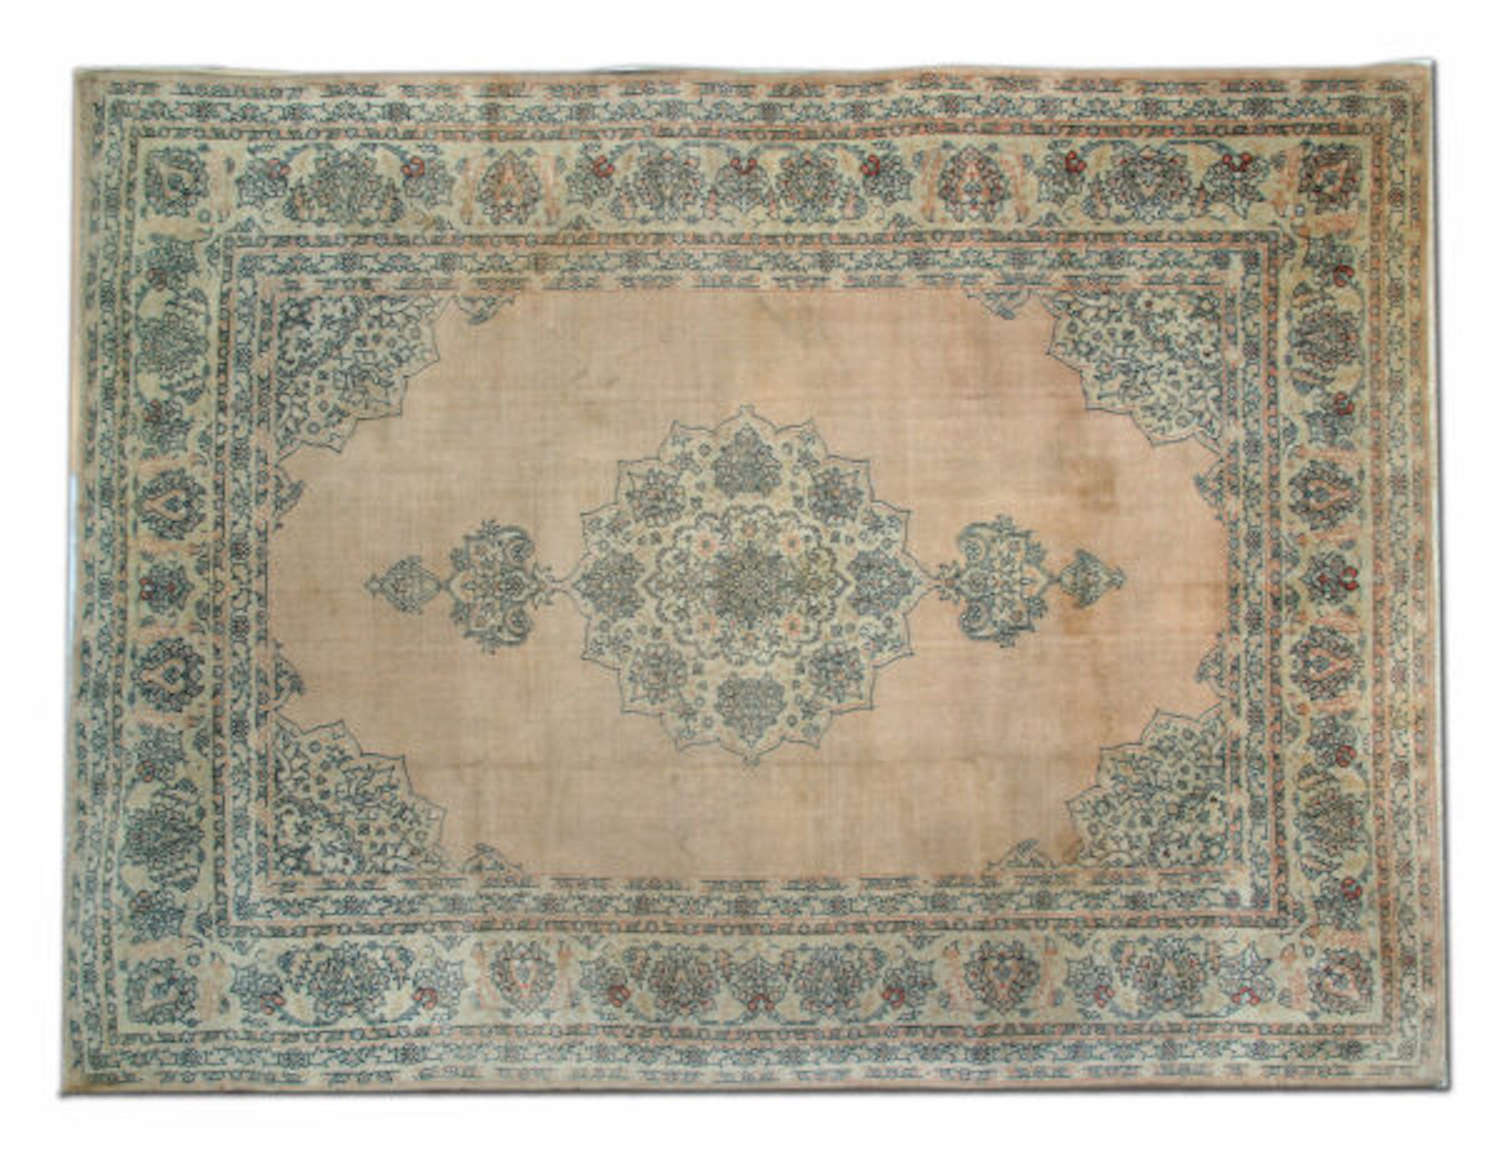 Antique Carpet, Antique Rugs Turkish Rug Borlou